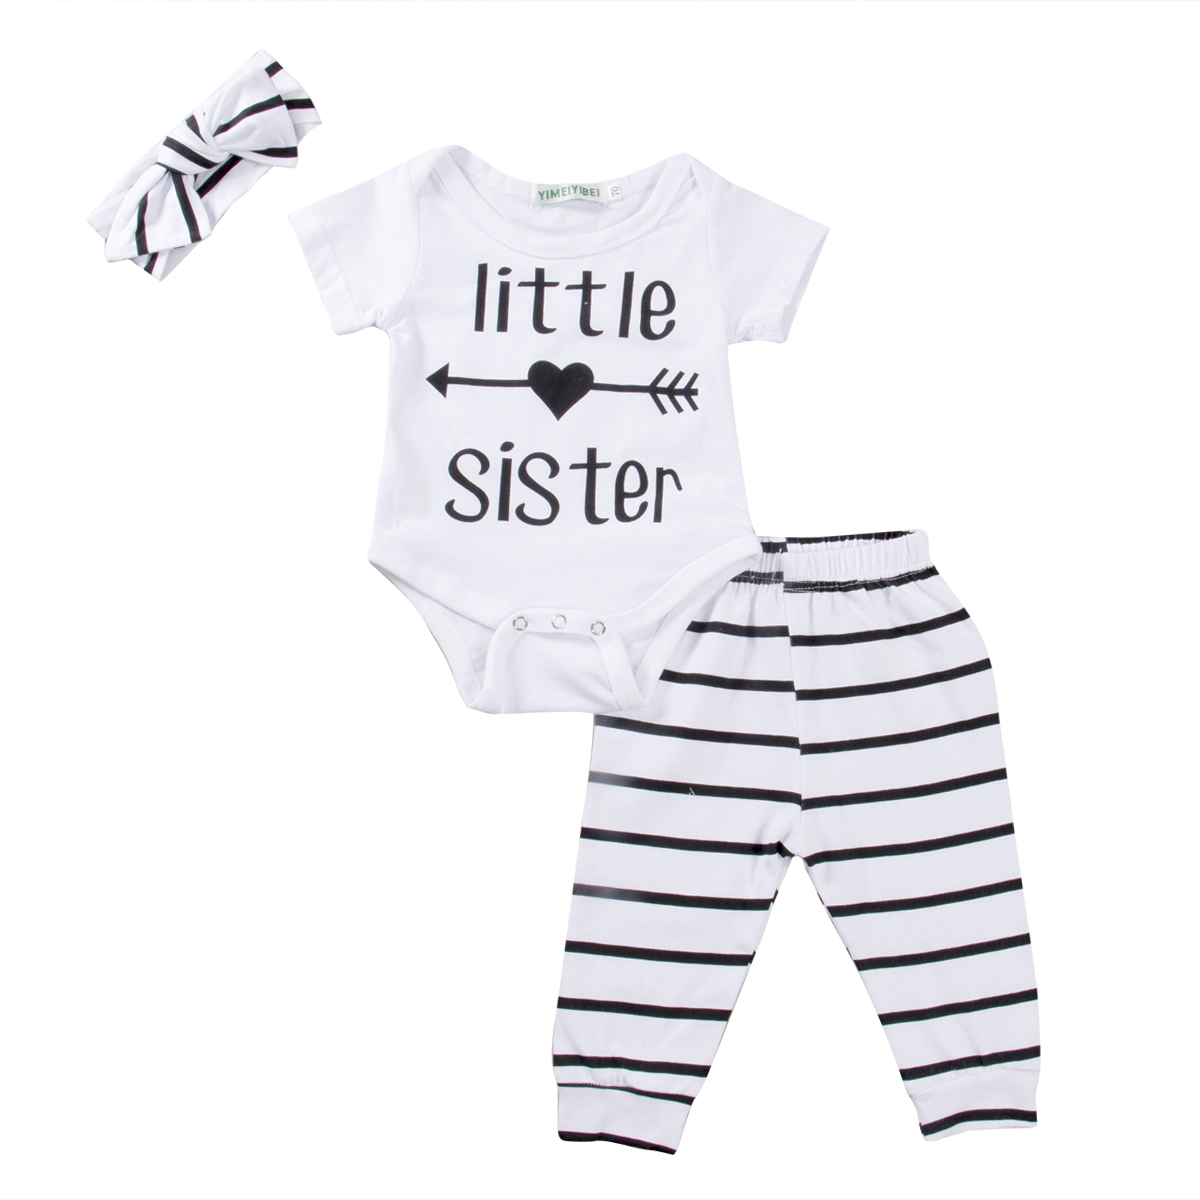 Summer Newborn Toddler Infant Baby Girl Clothes Short Sleeve White Romper+Striped Pants+Headband 3Pcs Set Cute Cotton Baby Set